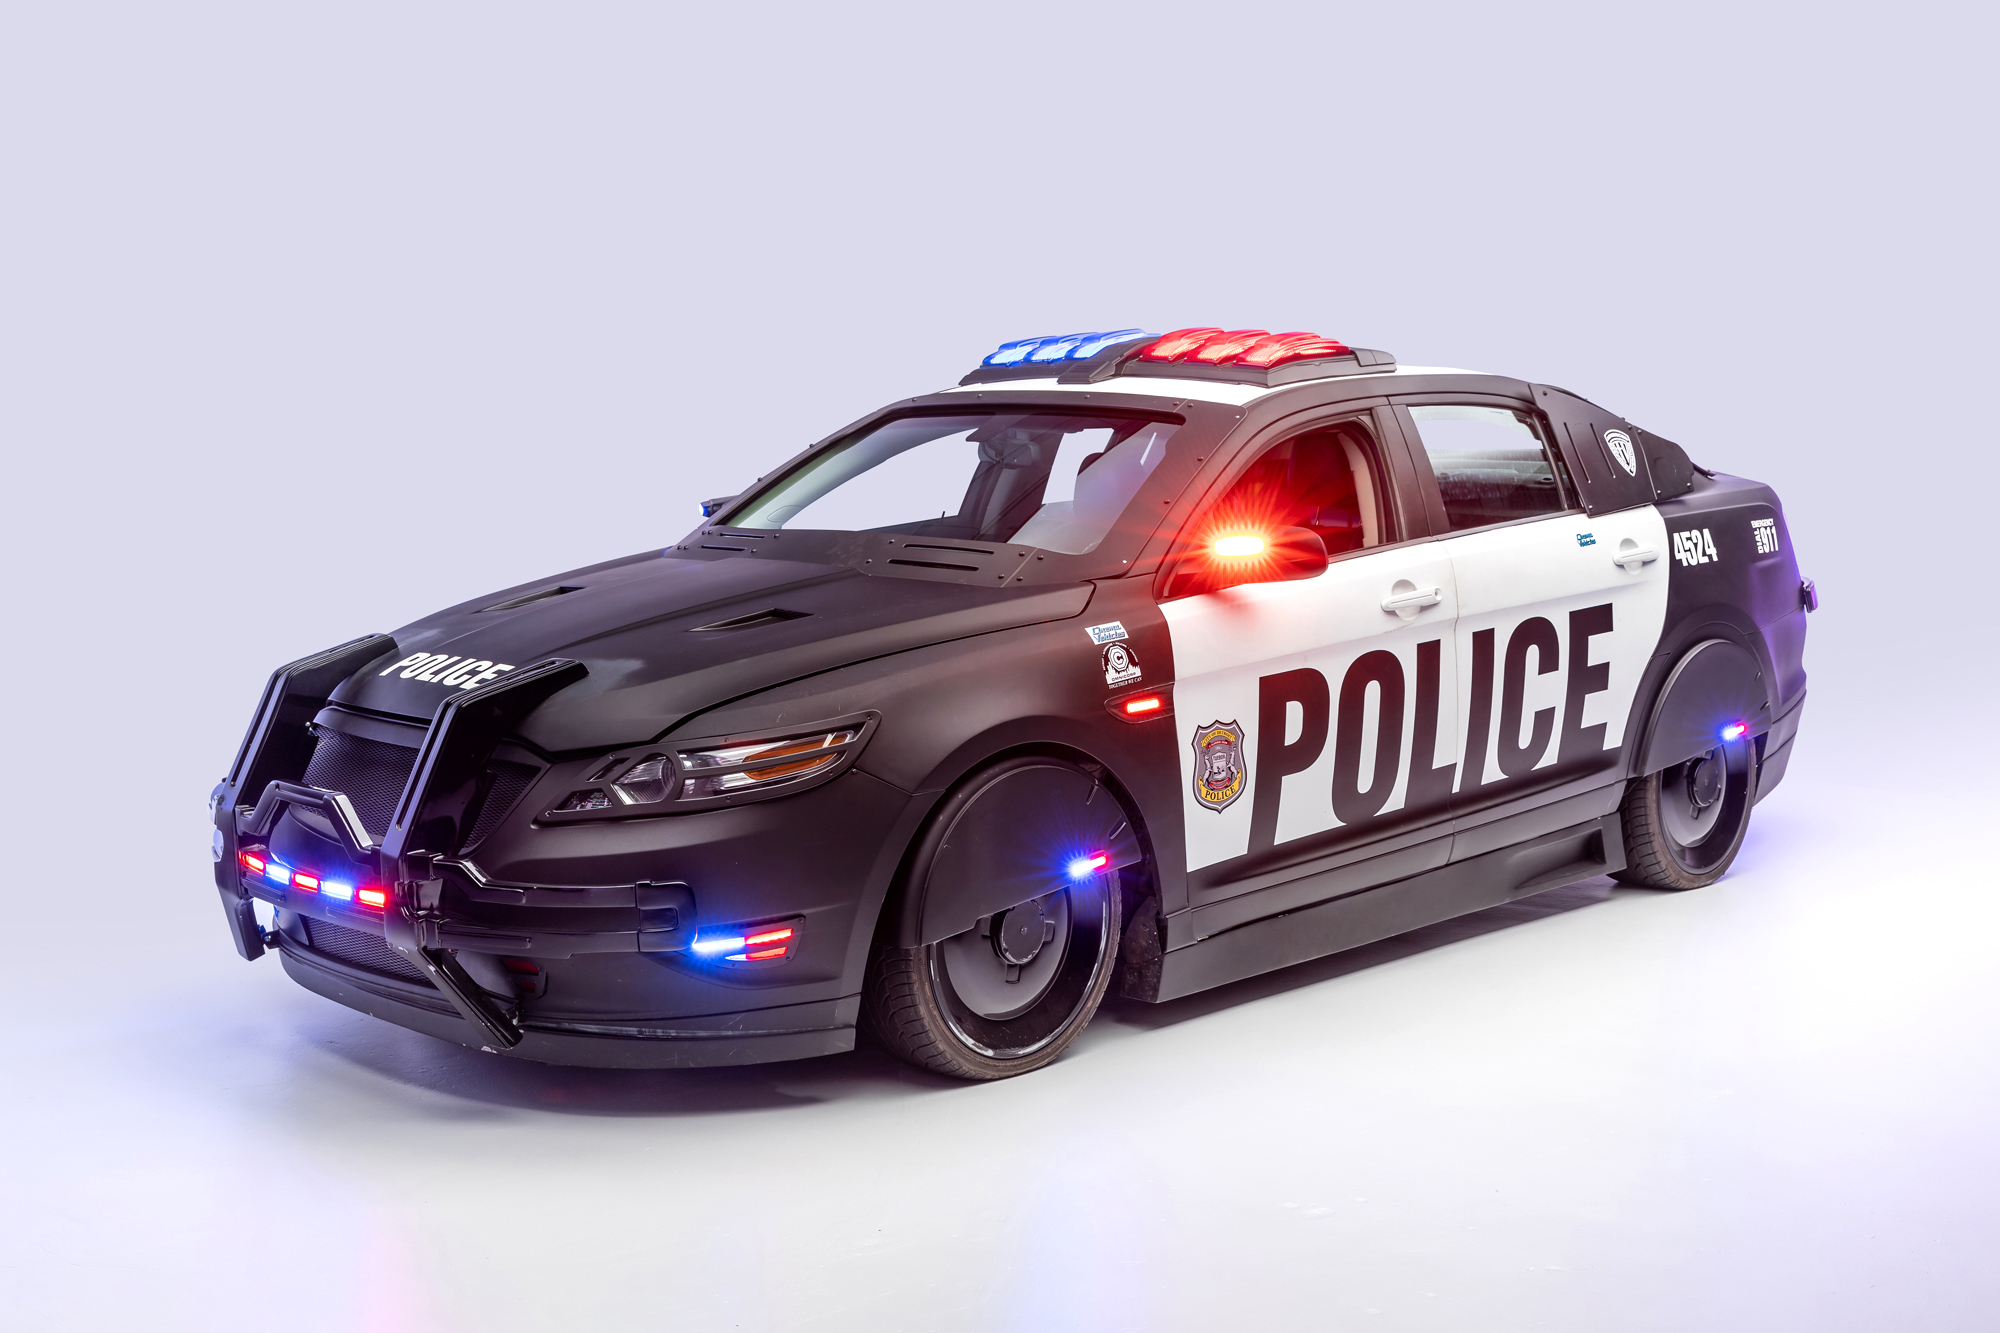 Robocop Ford Taurussci-fi movie and TV cars on display at LA's Petersen Museum